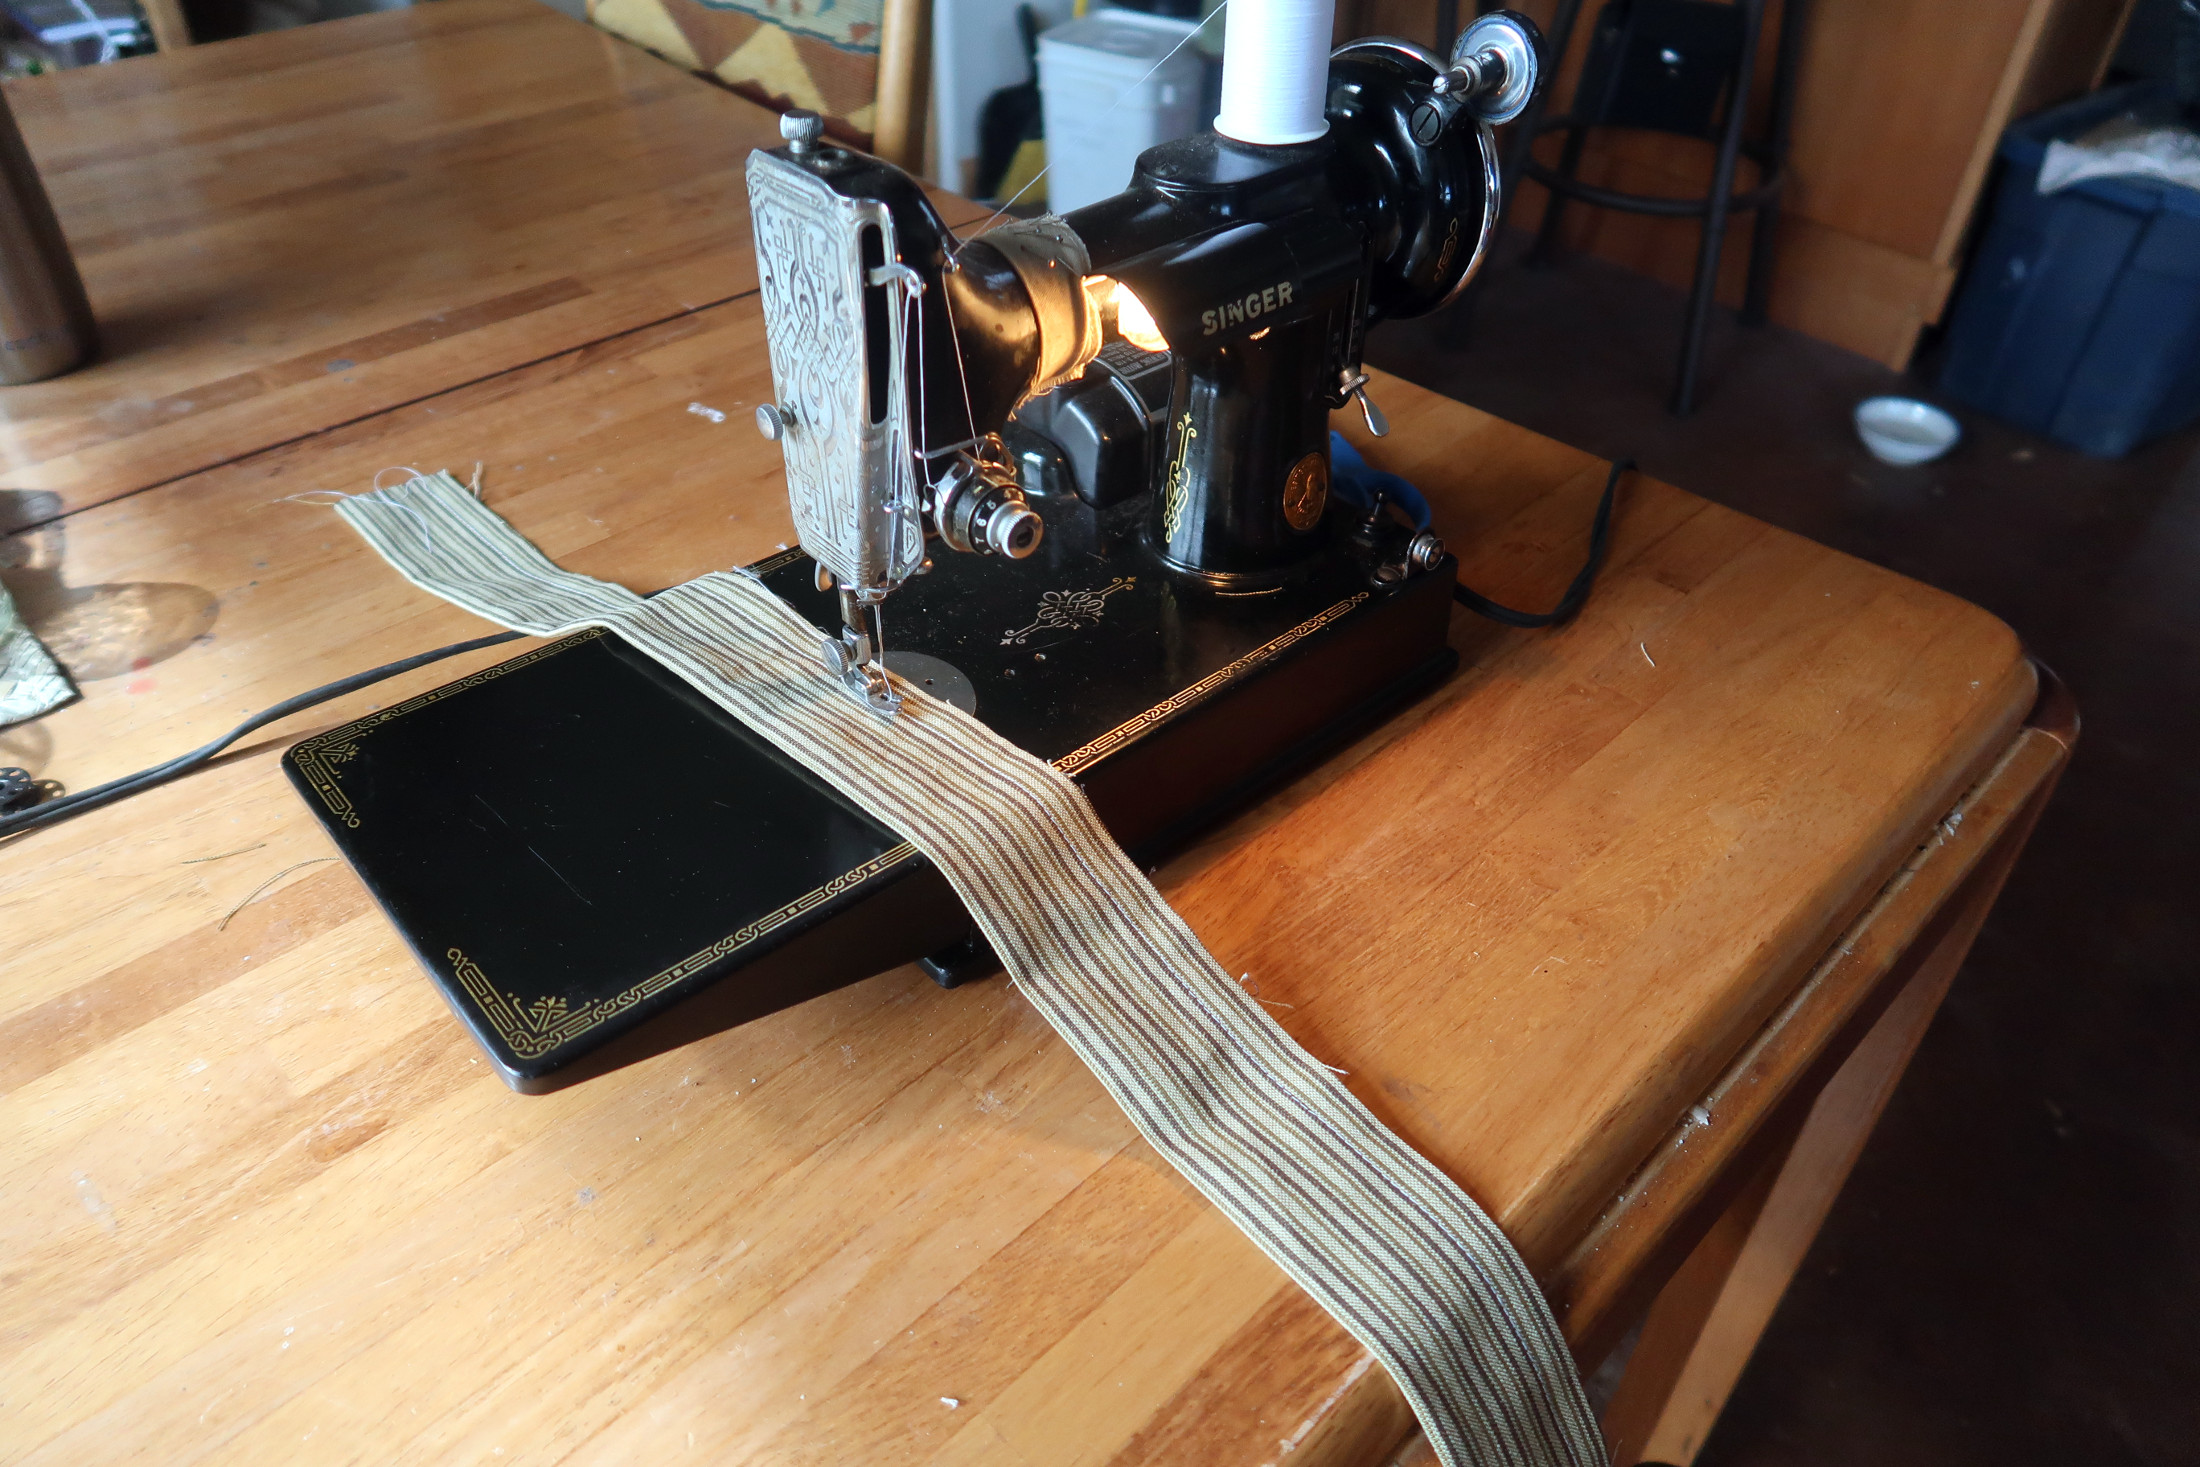 Straps: sewing